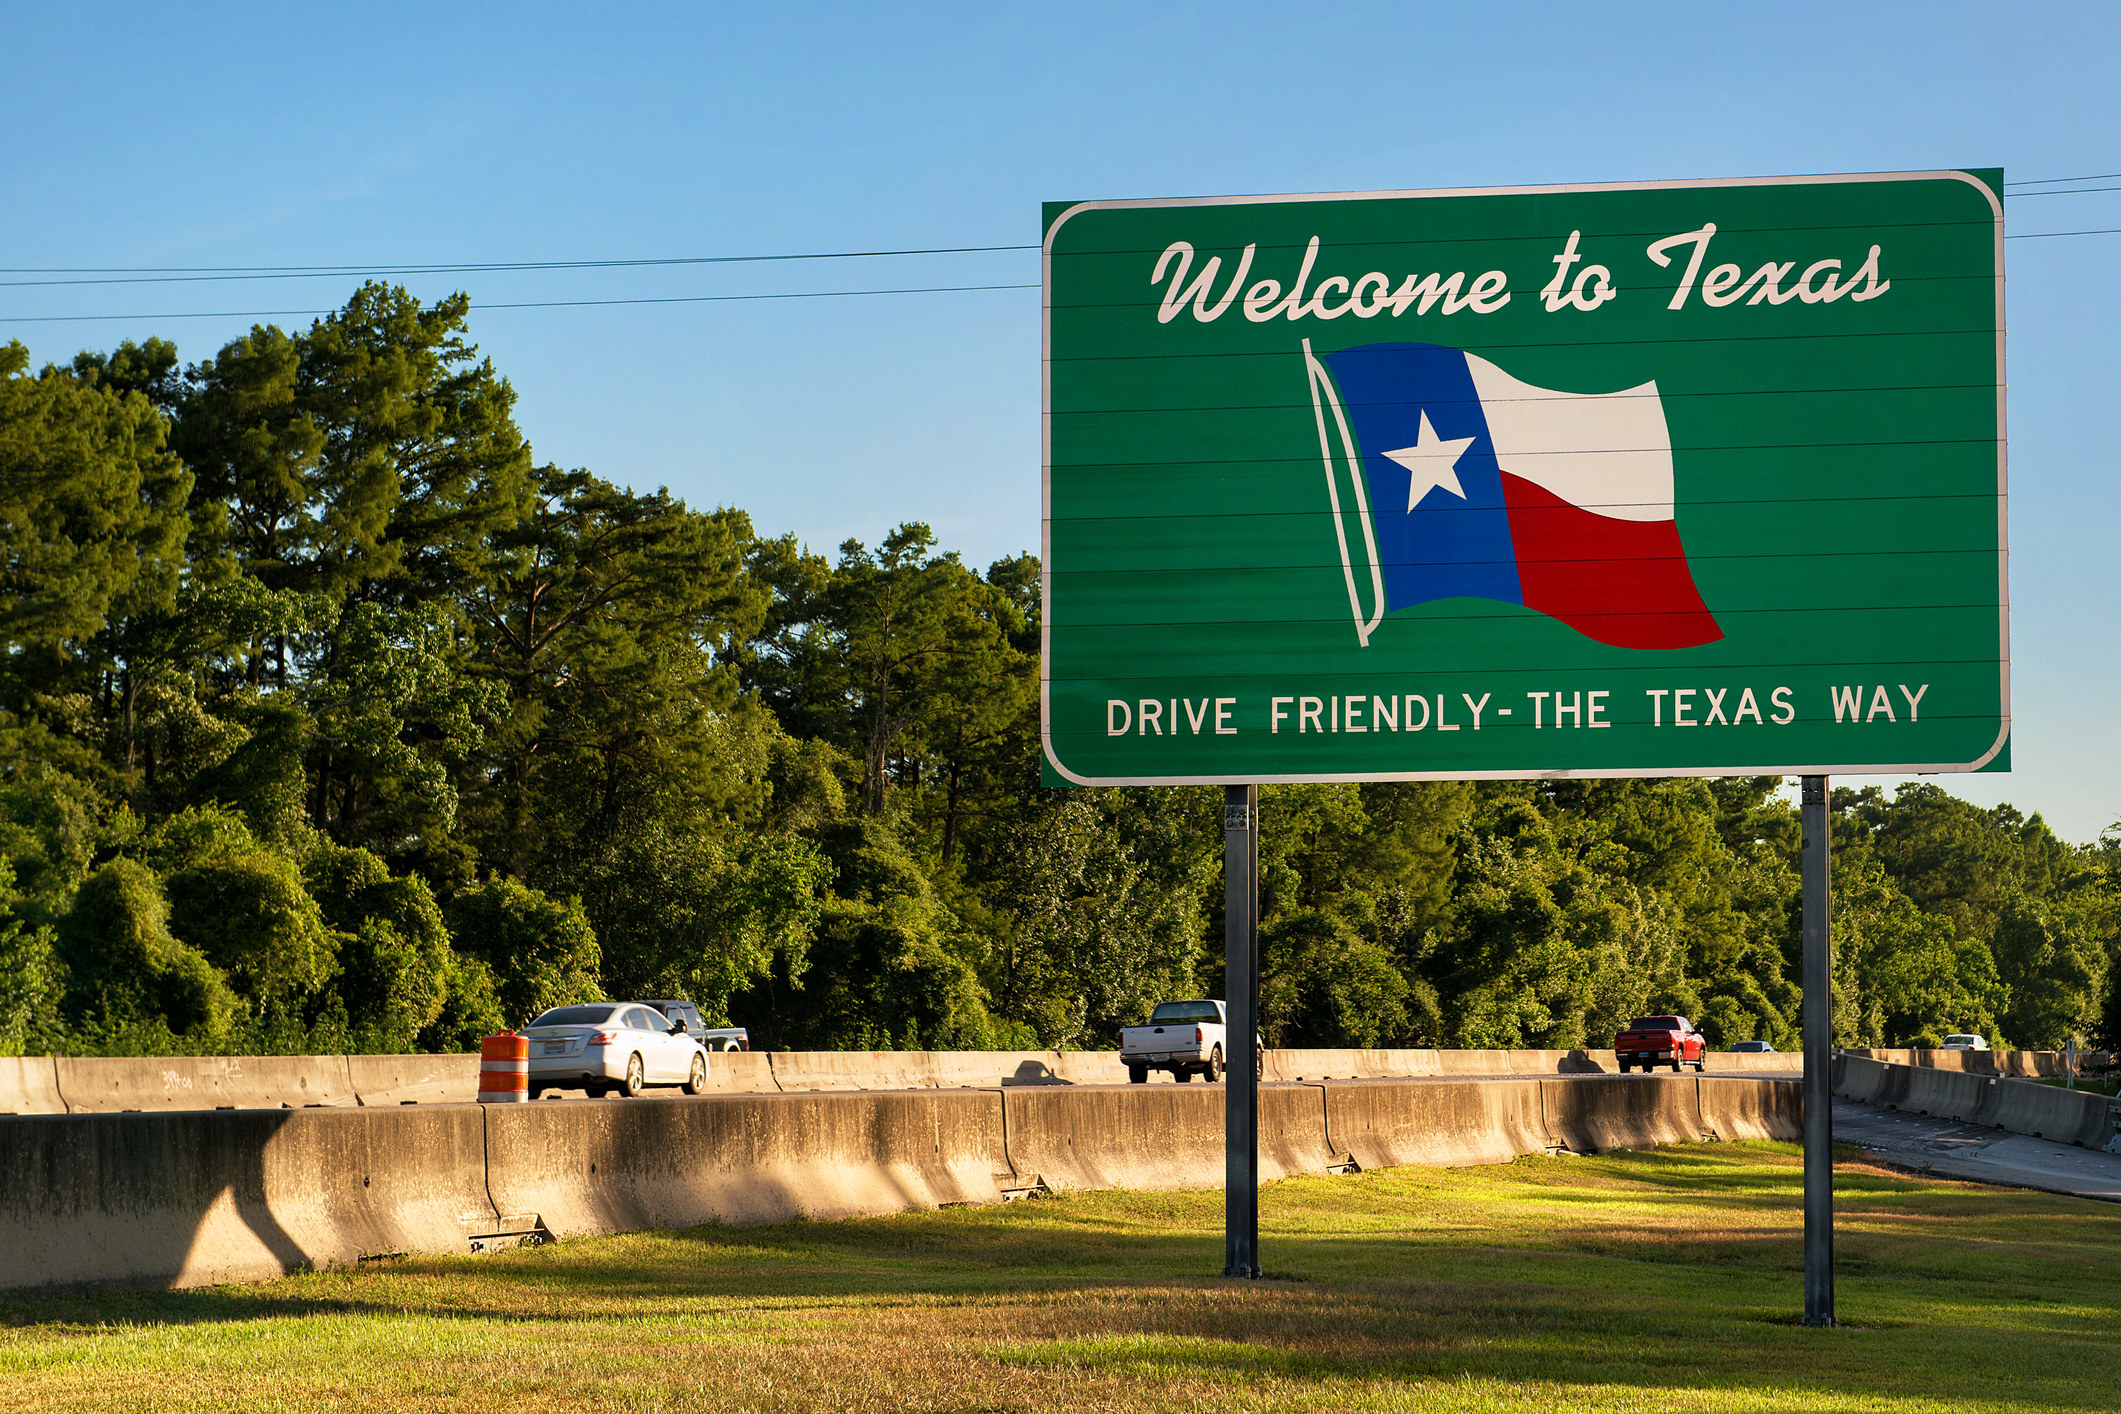 A Texas welcome sign on the road.